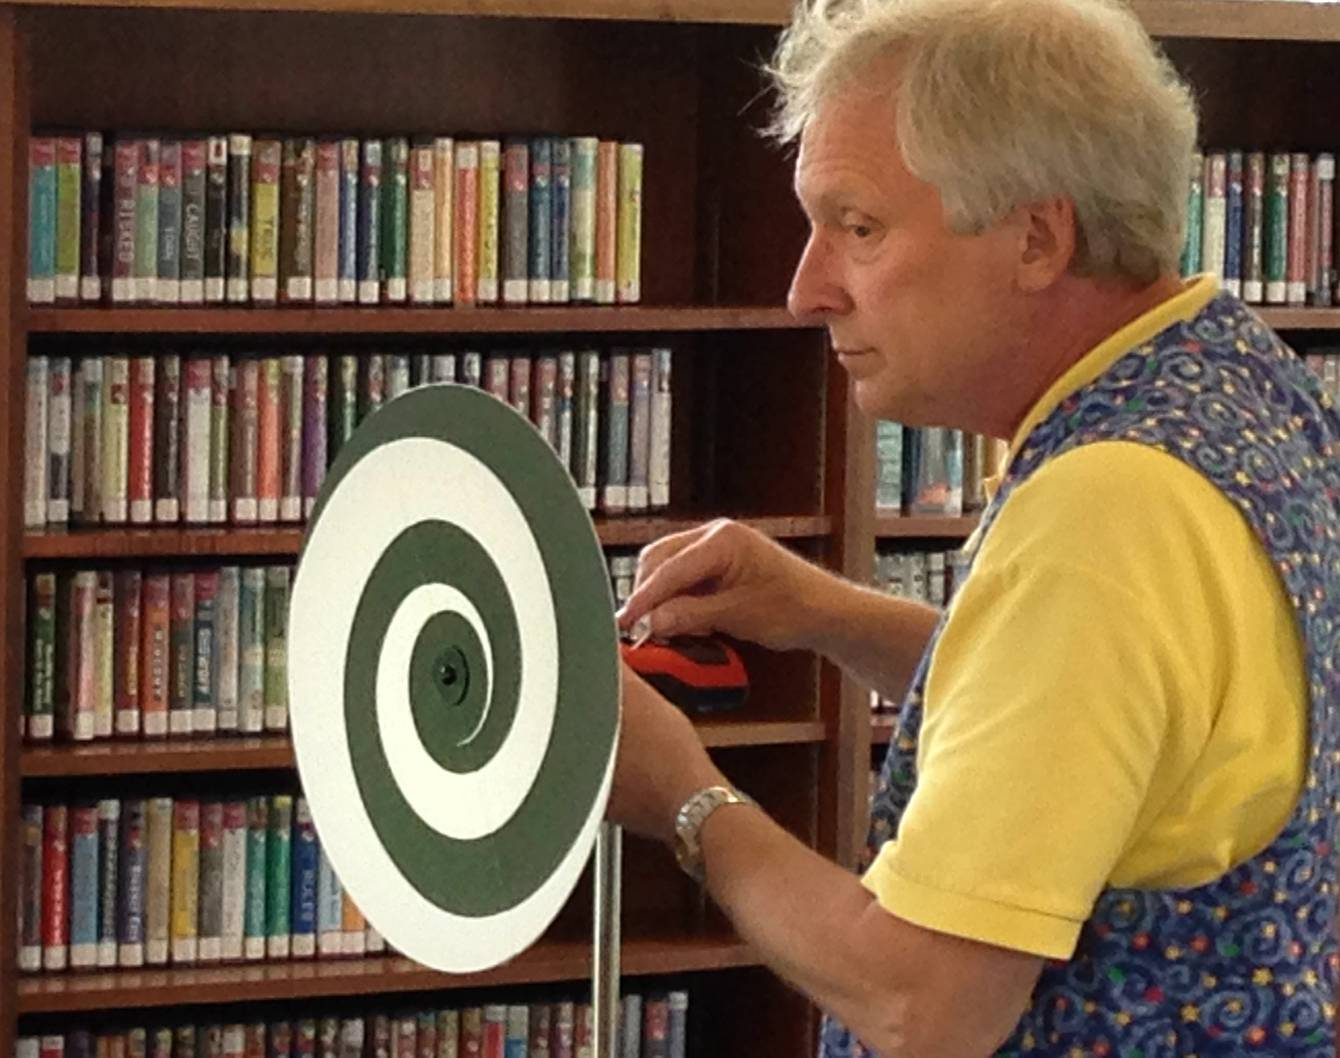 Magician Tim Glander performs a show about the magic of science Wednesday at the Town and Country Public Library in Elburn.